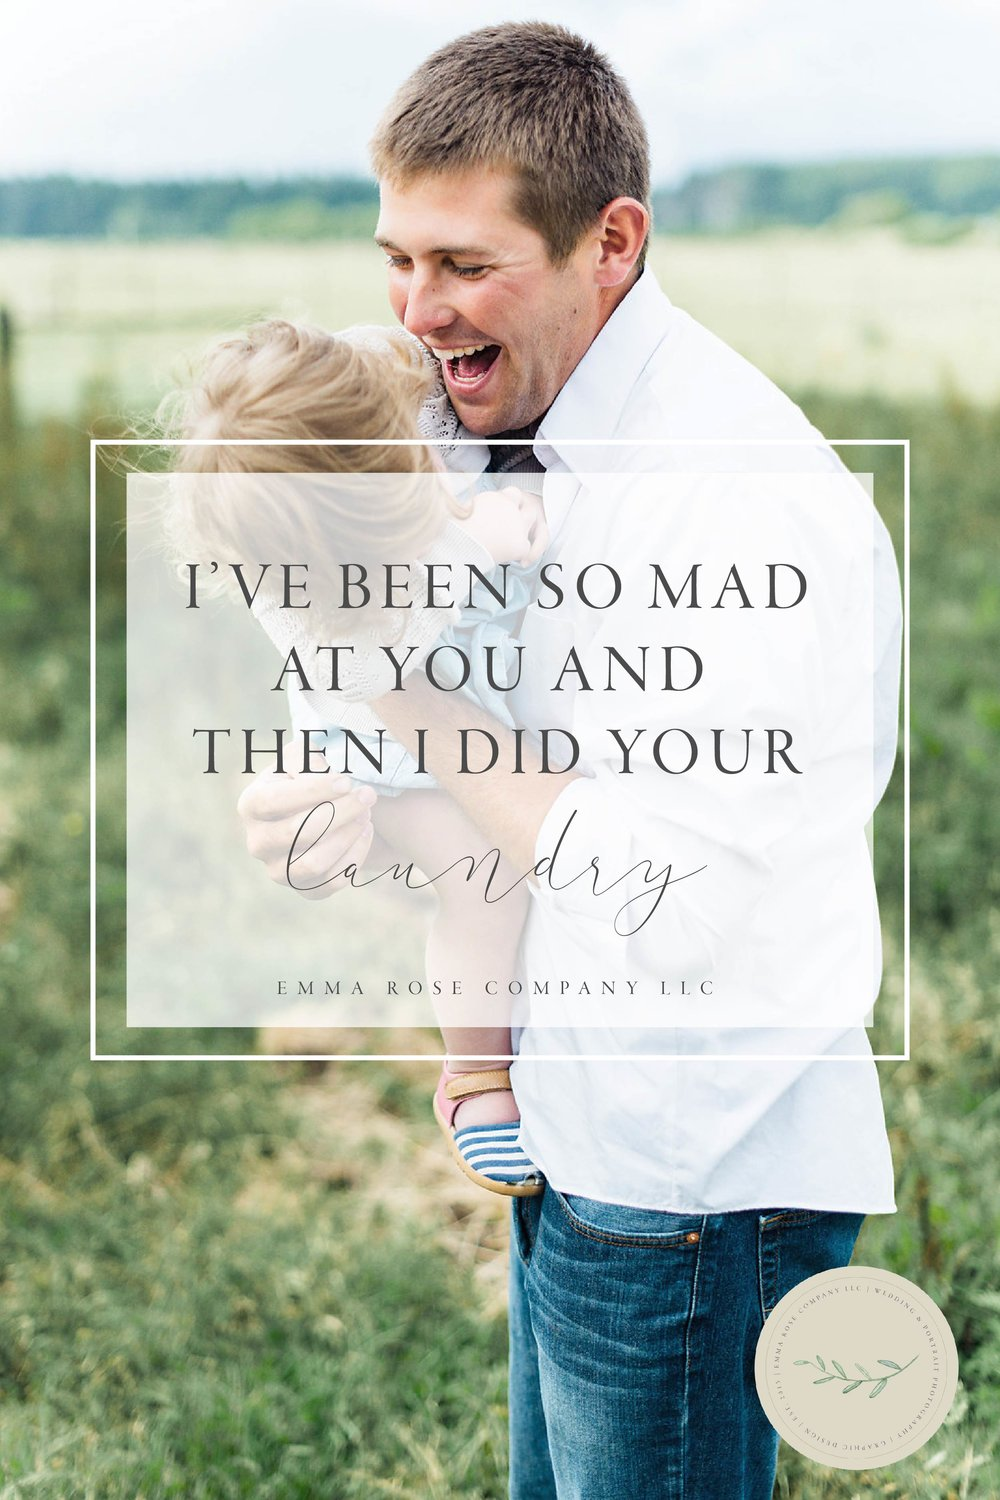 I've been so mad at you, an open letter to my husband, marriage, ups and downs, moving, life transitions, beautiful ring